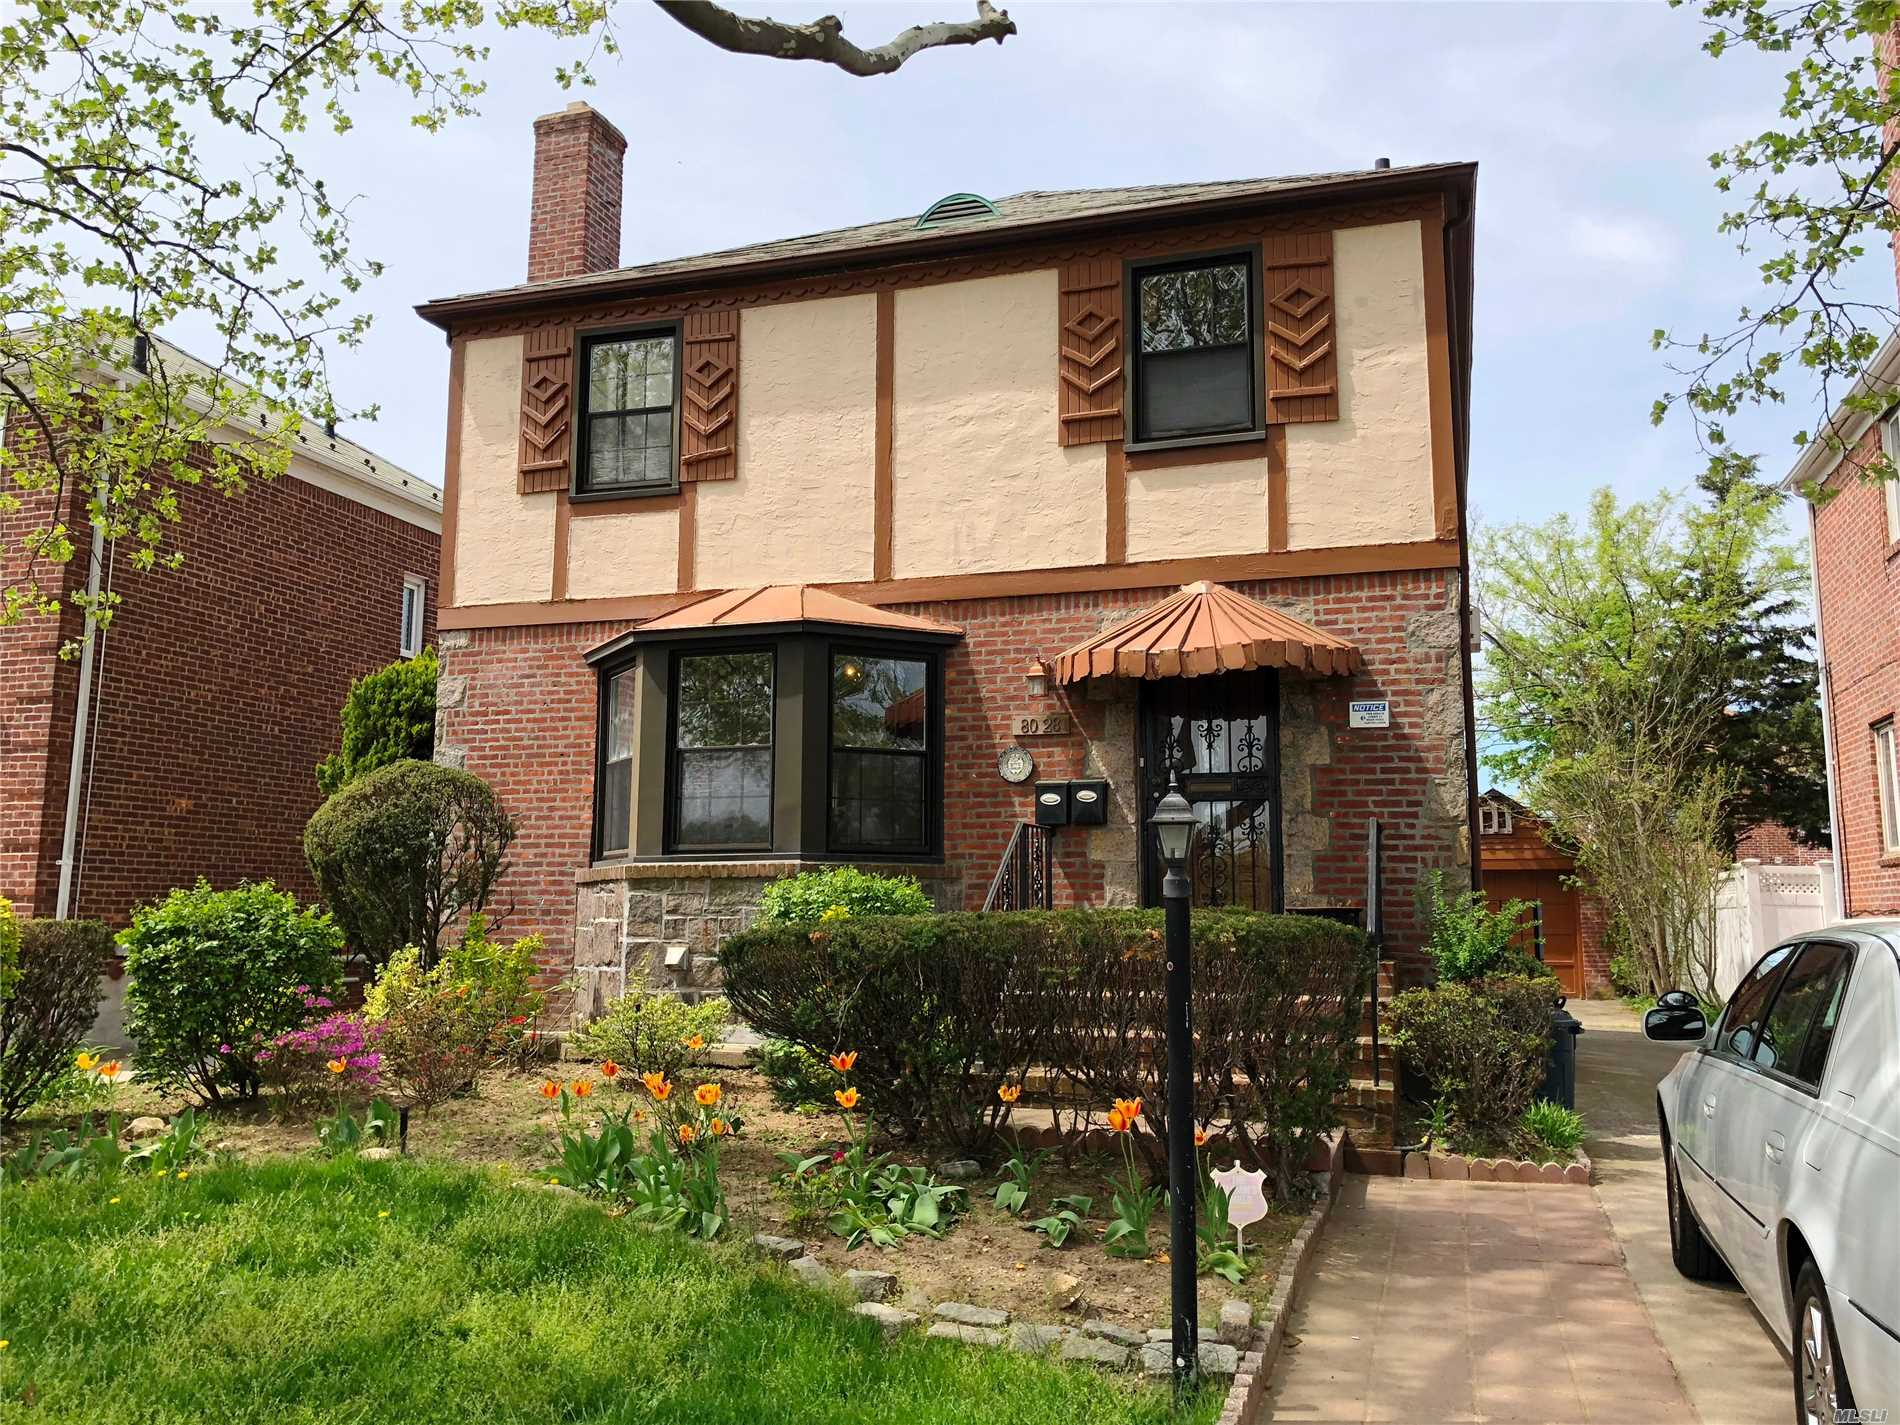 Beautifully Well-Kept 3 Bedroom, 2.5 Bath Home Rental In Jamaica Estates. Features A Spacious Backyard With A Lovely Deck Where You Can Enjoy Your Morning Coffee Or Dine Al Fresco. This Home Is Ideally Located In School District #26 And Zoned For P.S. 188. Amazing Views Of Cunningham Park And Close To Buses, Shopping And Restaurants.